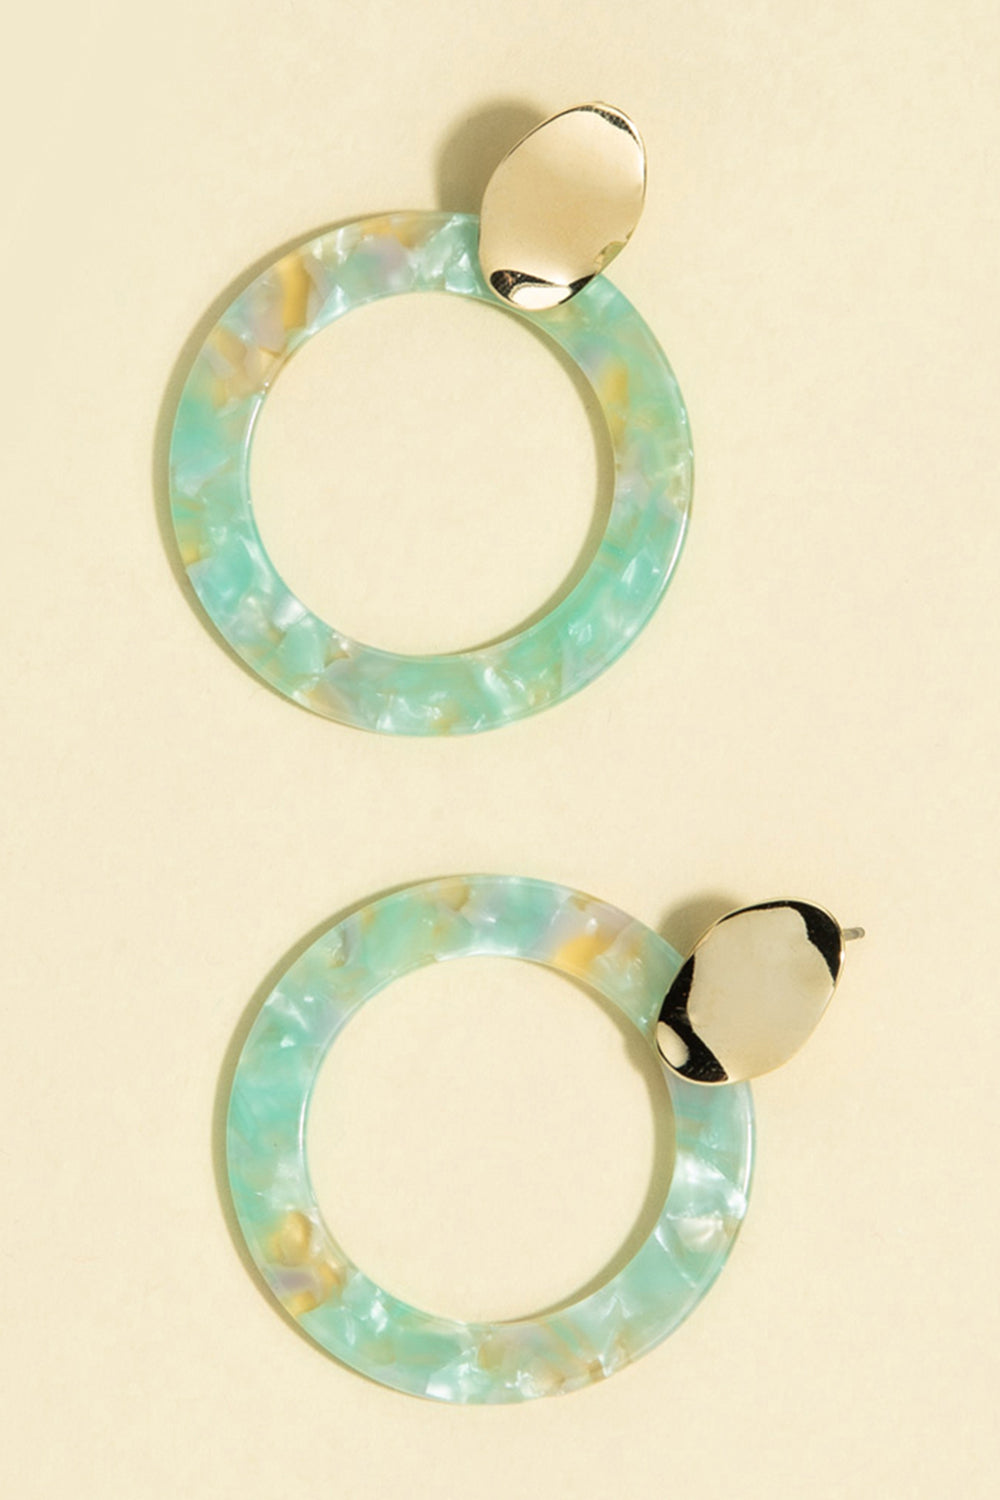 Type 1 Fountain of Youth Earrings